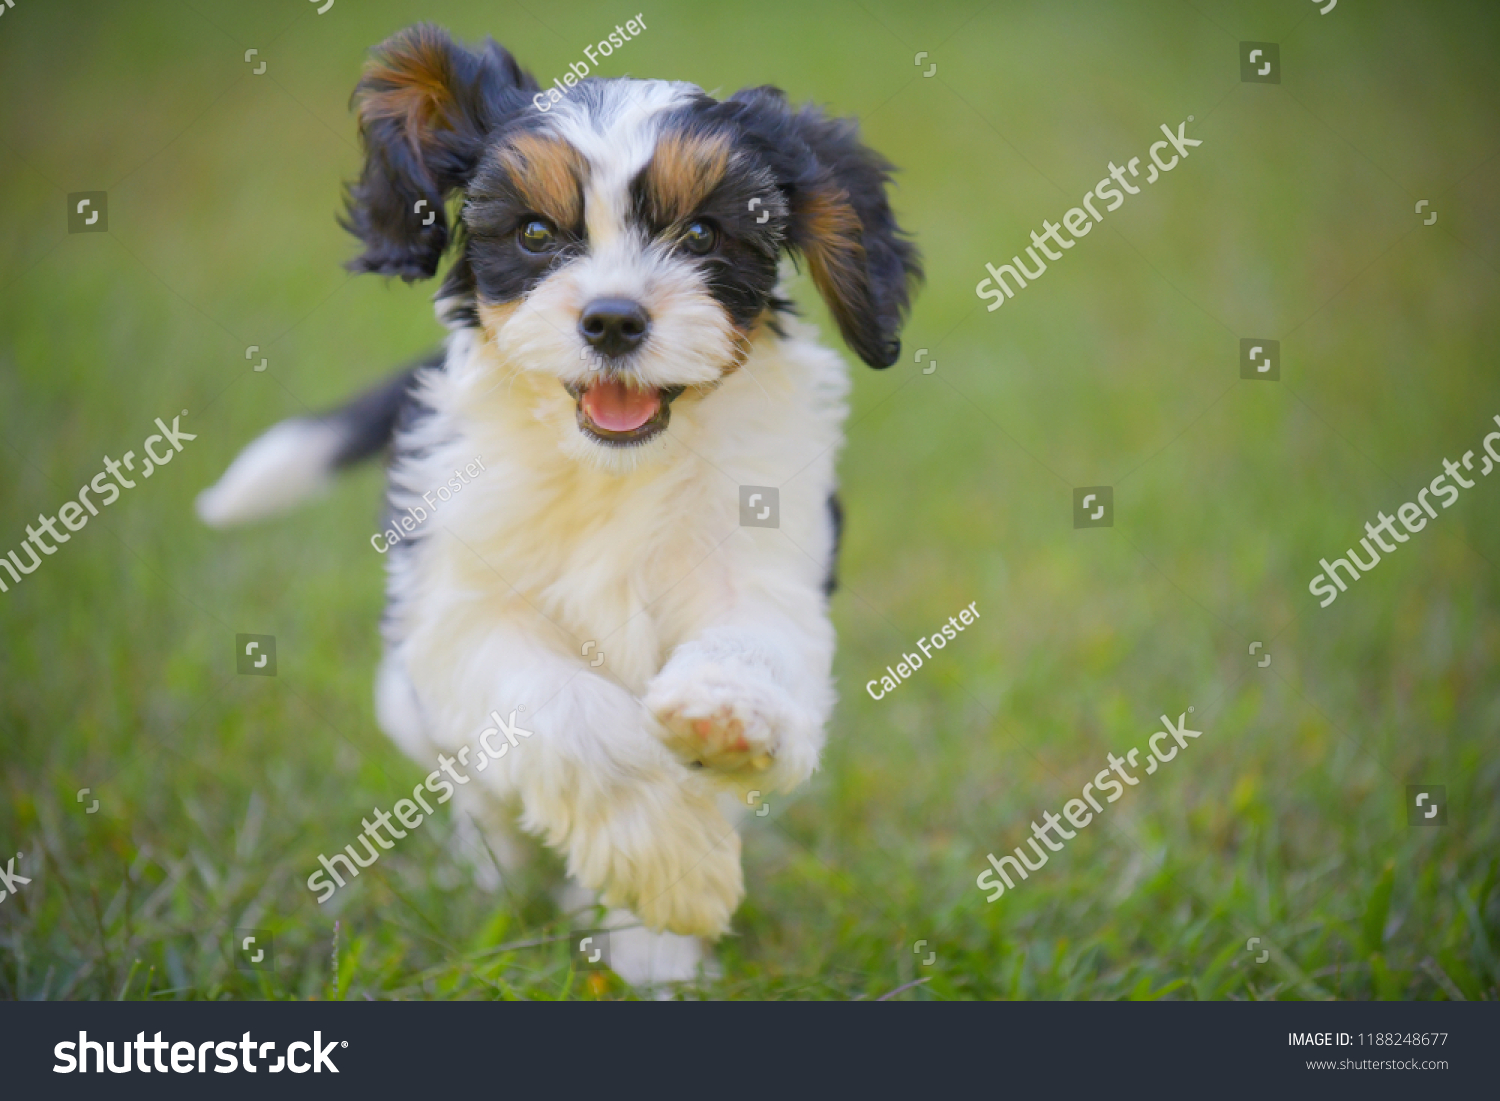 Cute Cavalier King Charles Spaniel Puppy Stock Photo Edit Now 1188248677